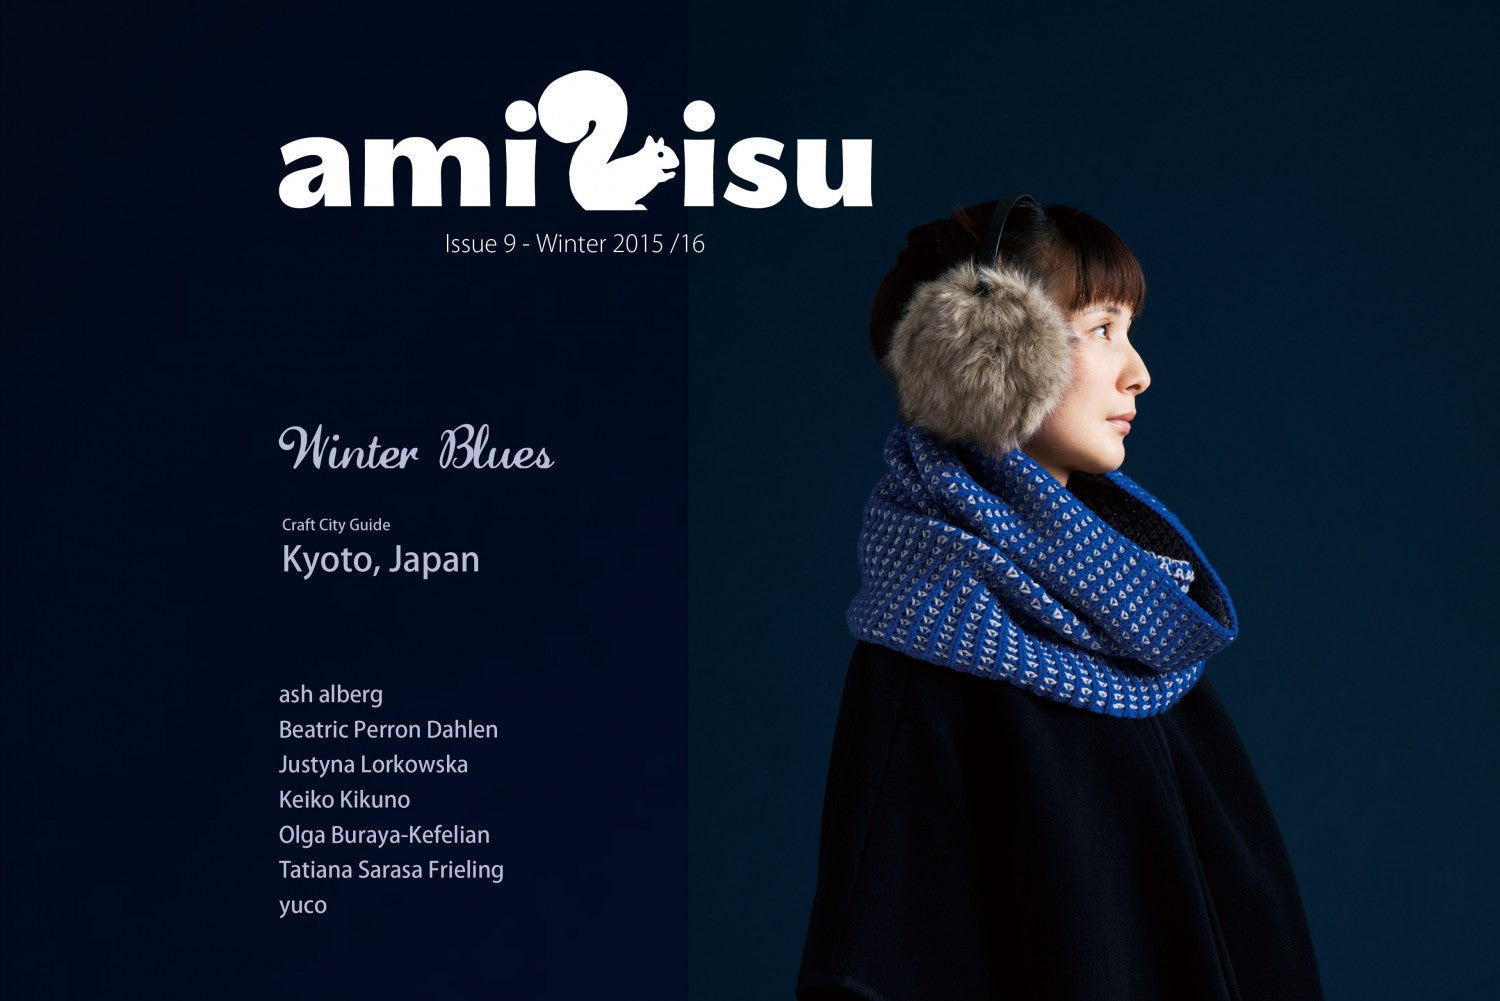 amirisu issue 9 cover